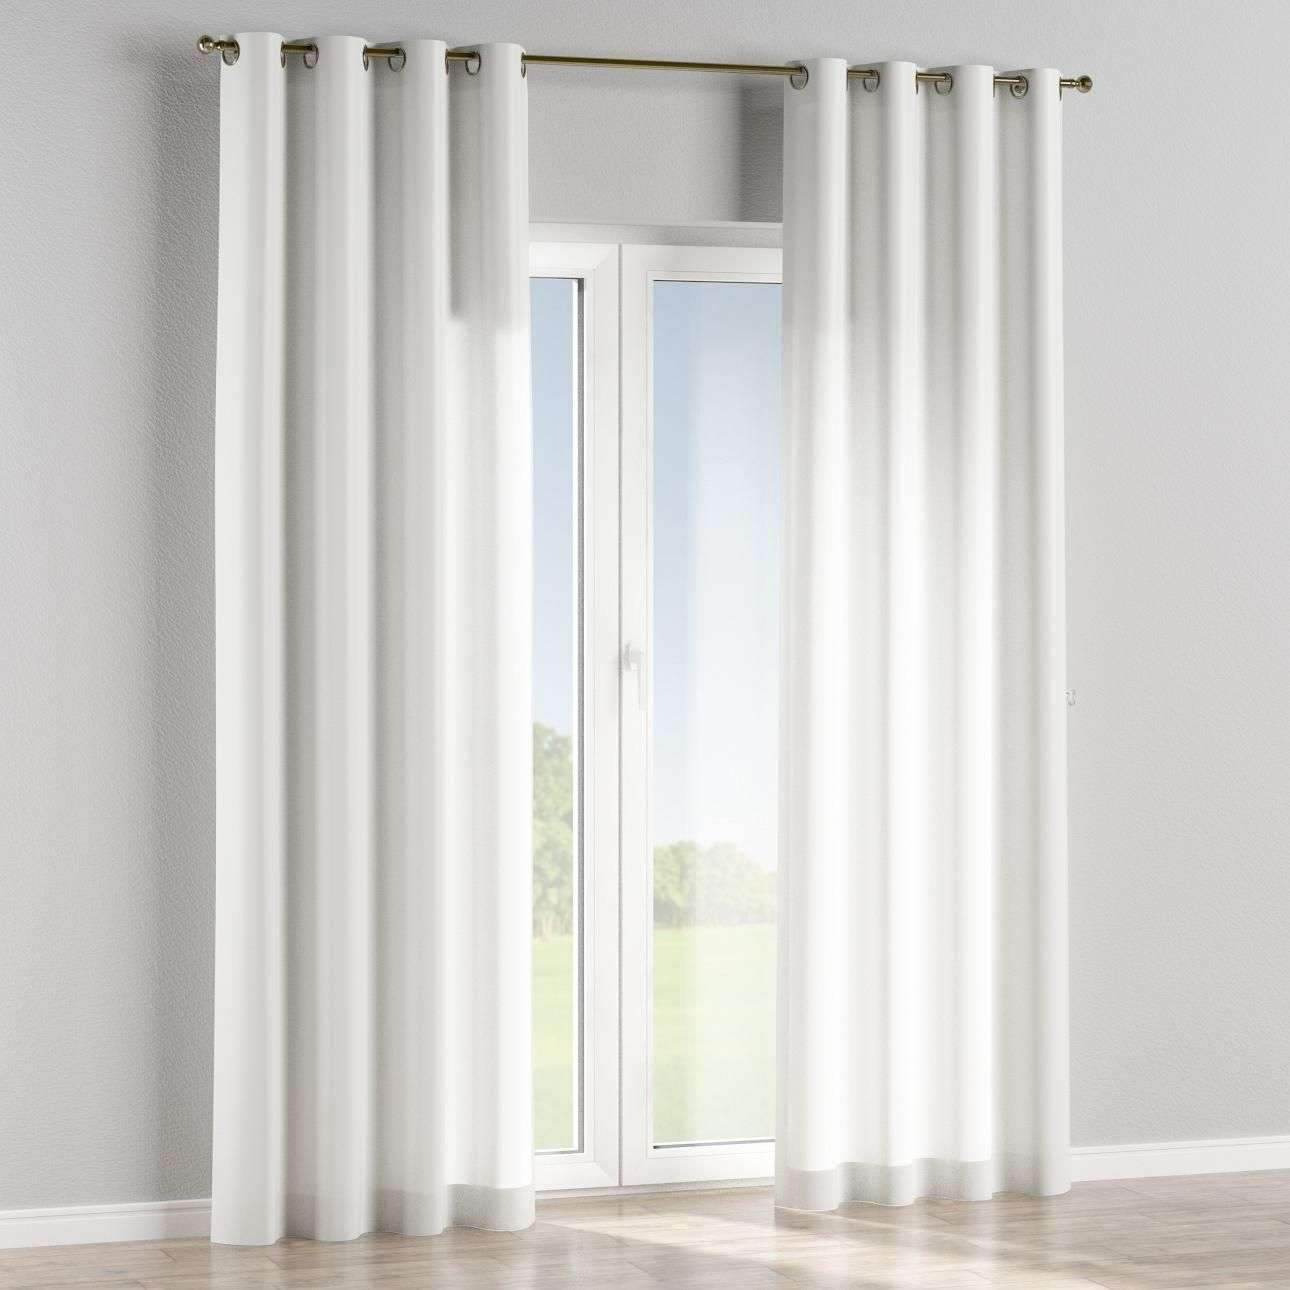 Eyelet lined curtains in collection Cardiff, fabric: 136-20